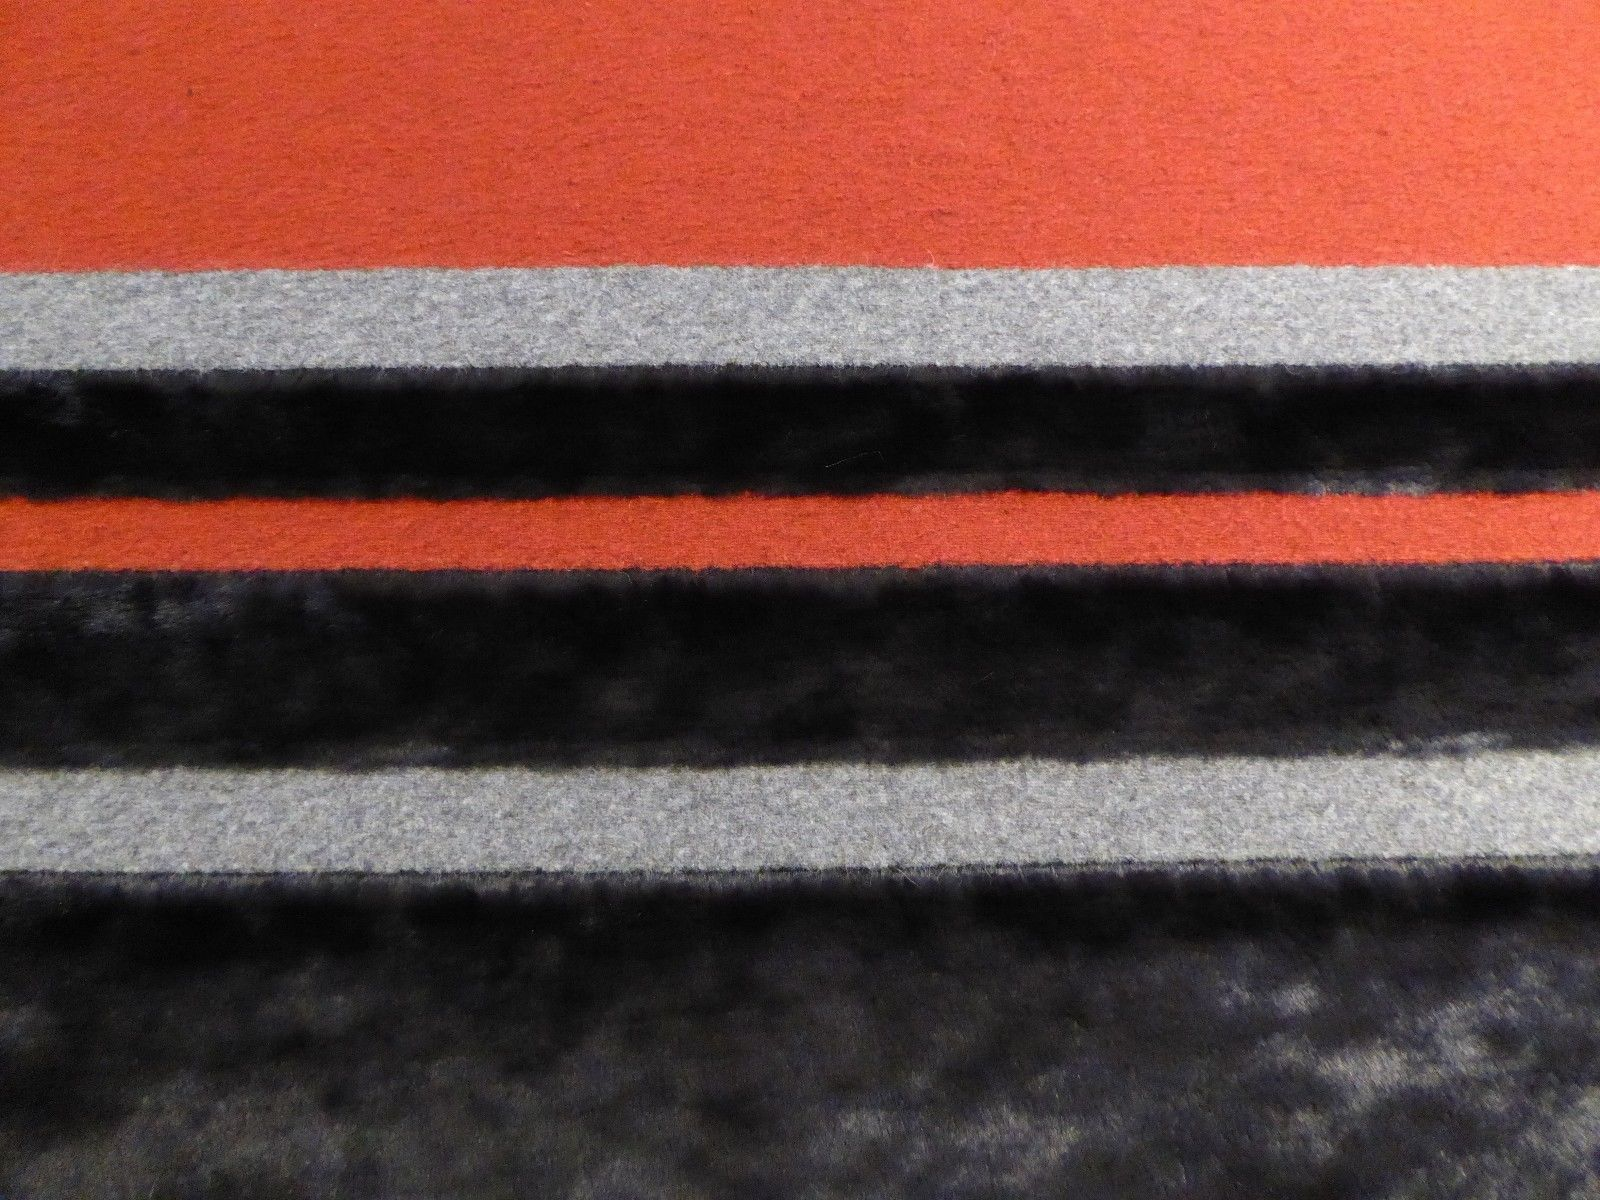 Black Red Gray Stripes FAUX FUR WITH WOOL PATTERNED COATING FROM ITALY